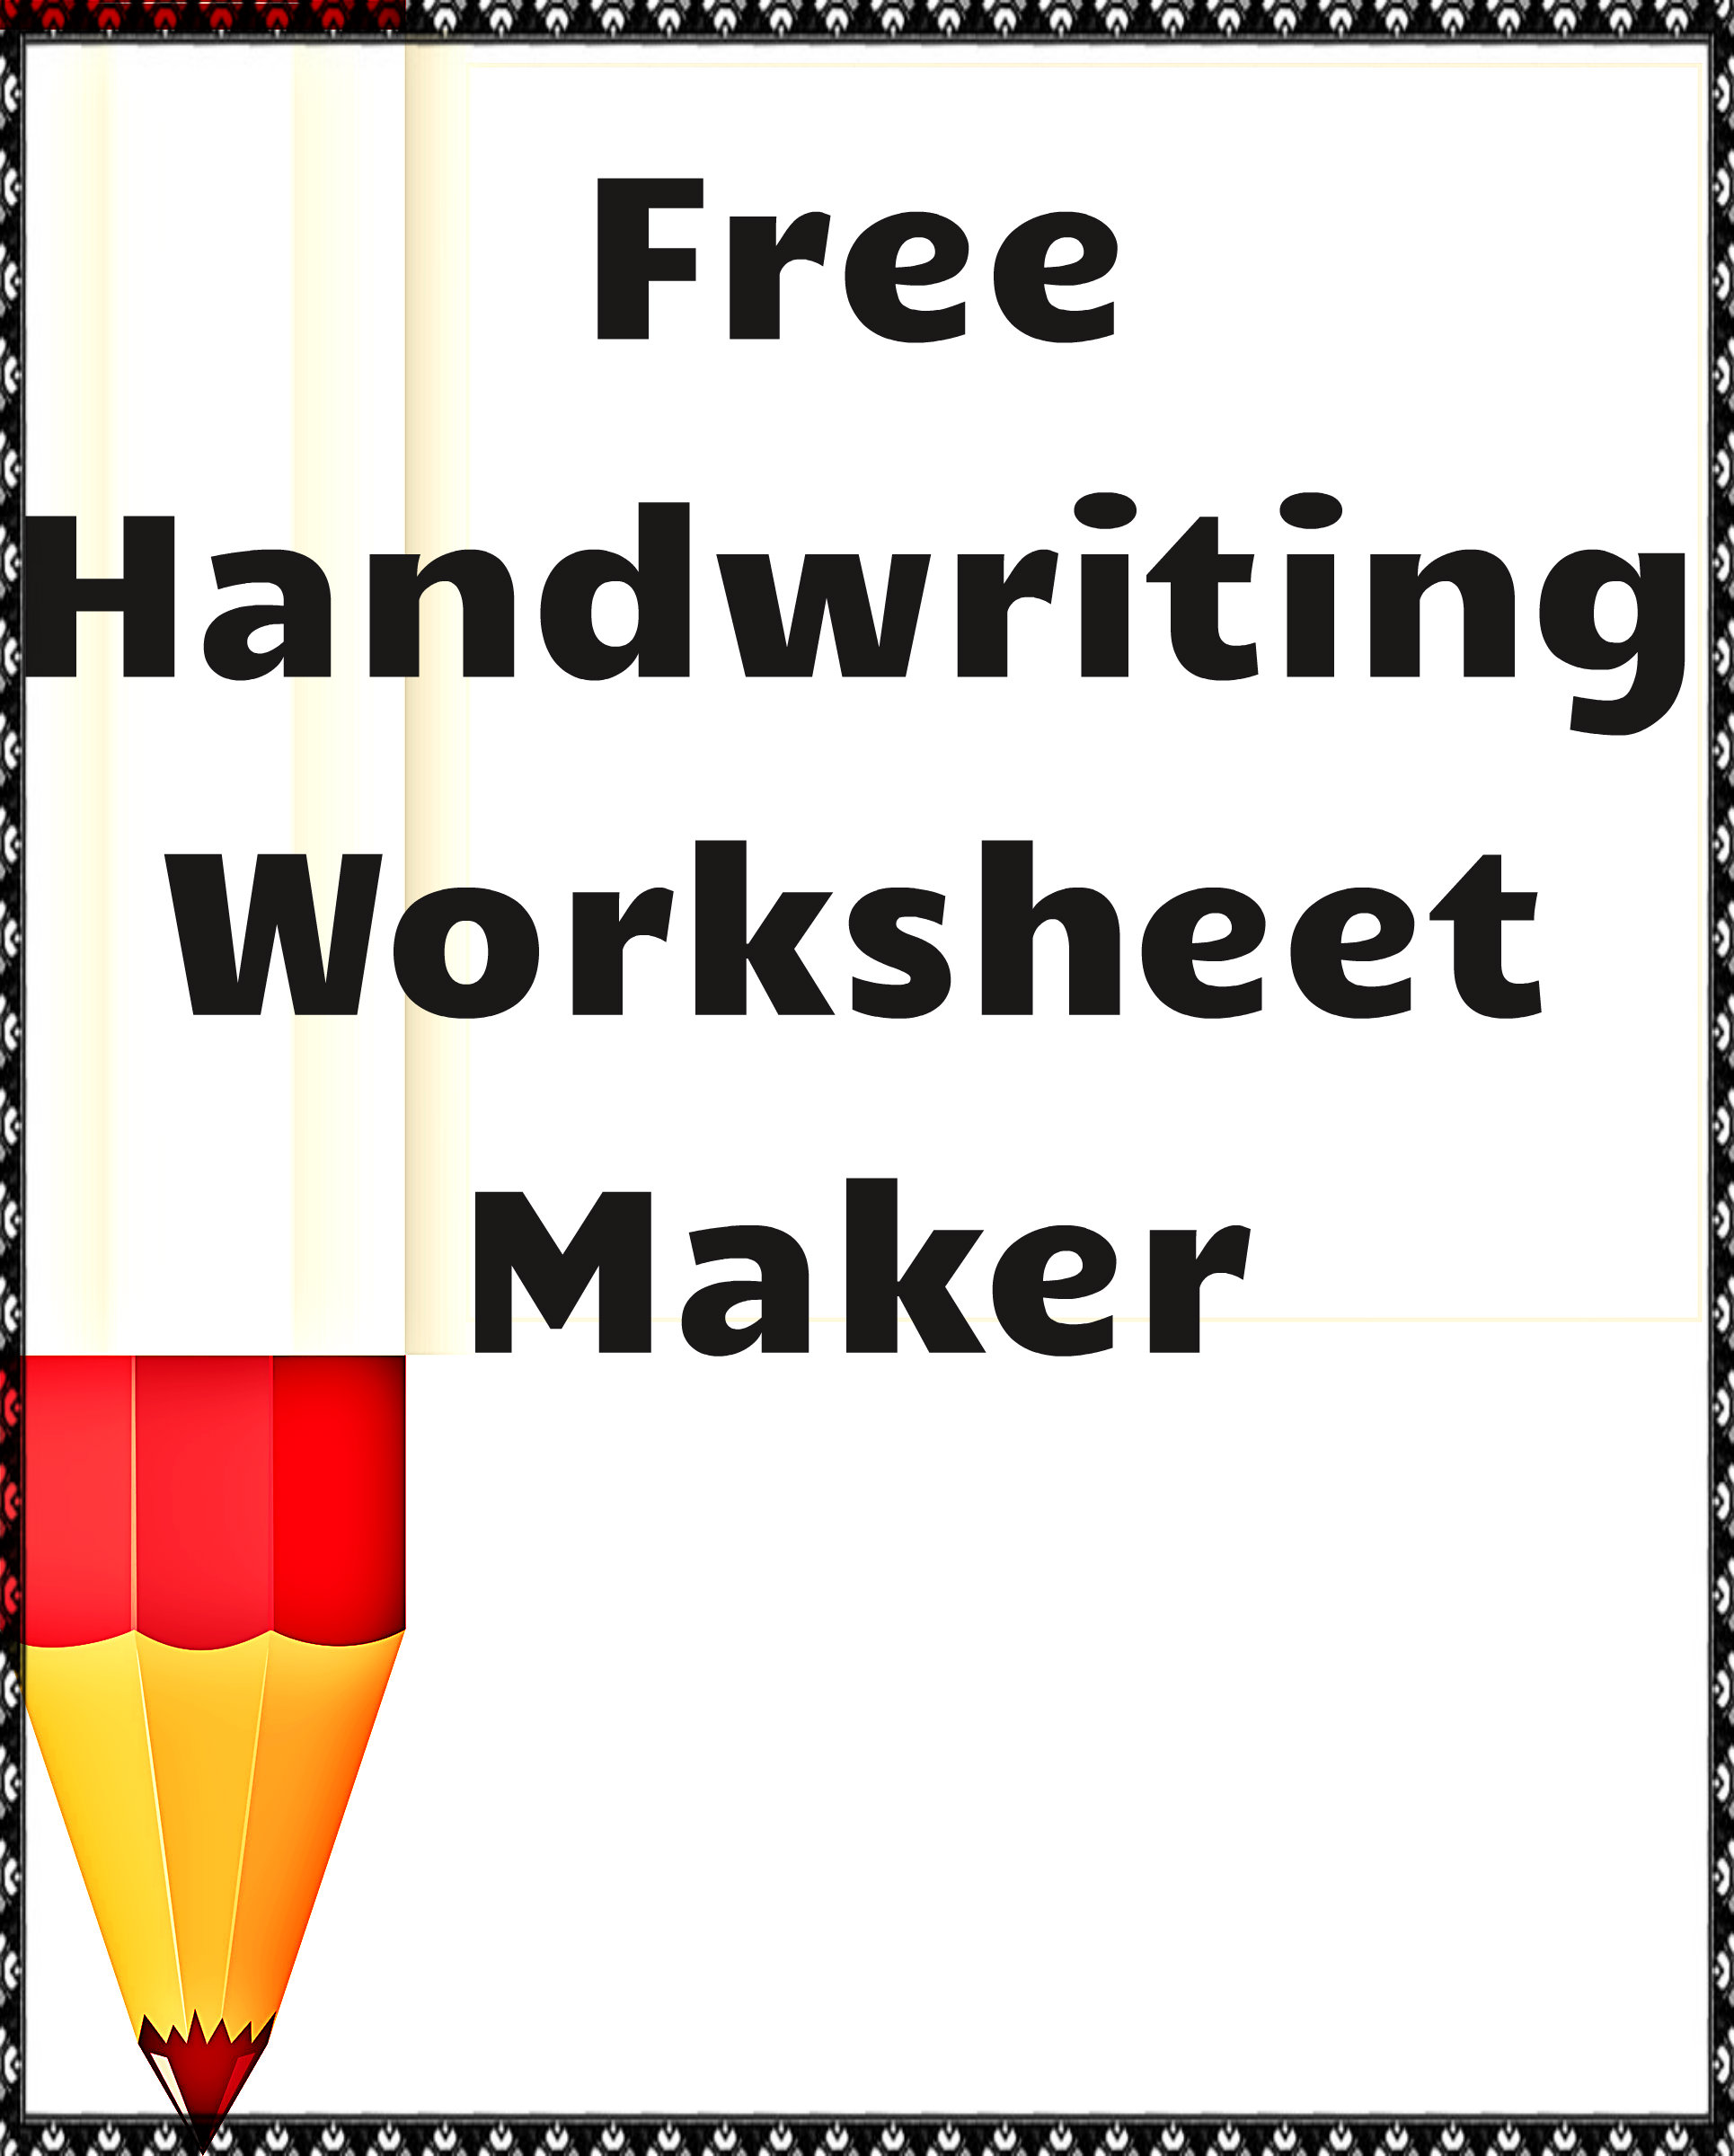 Worksheet Handwriting Worksheets Maker handwriting worksheet maker free classroom tools readyteacher com maker